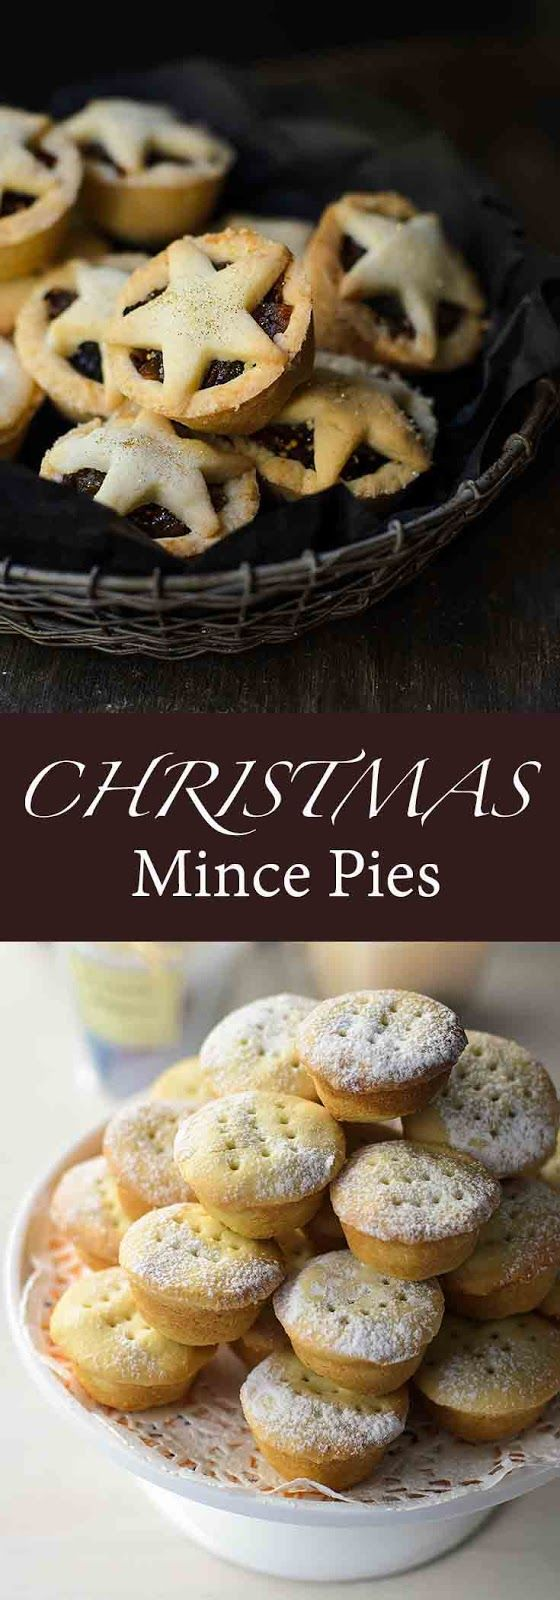 Christmas mince pies recipe. Made from sultanah, raisins, dried figs, apricots. Once you've made these Christmas mincemeat pies, you will never want to buy the store-bought pies ever again.